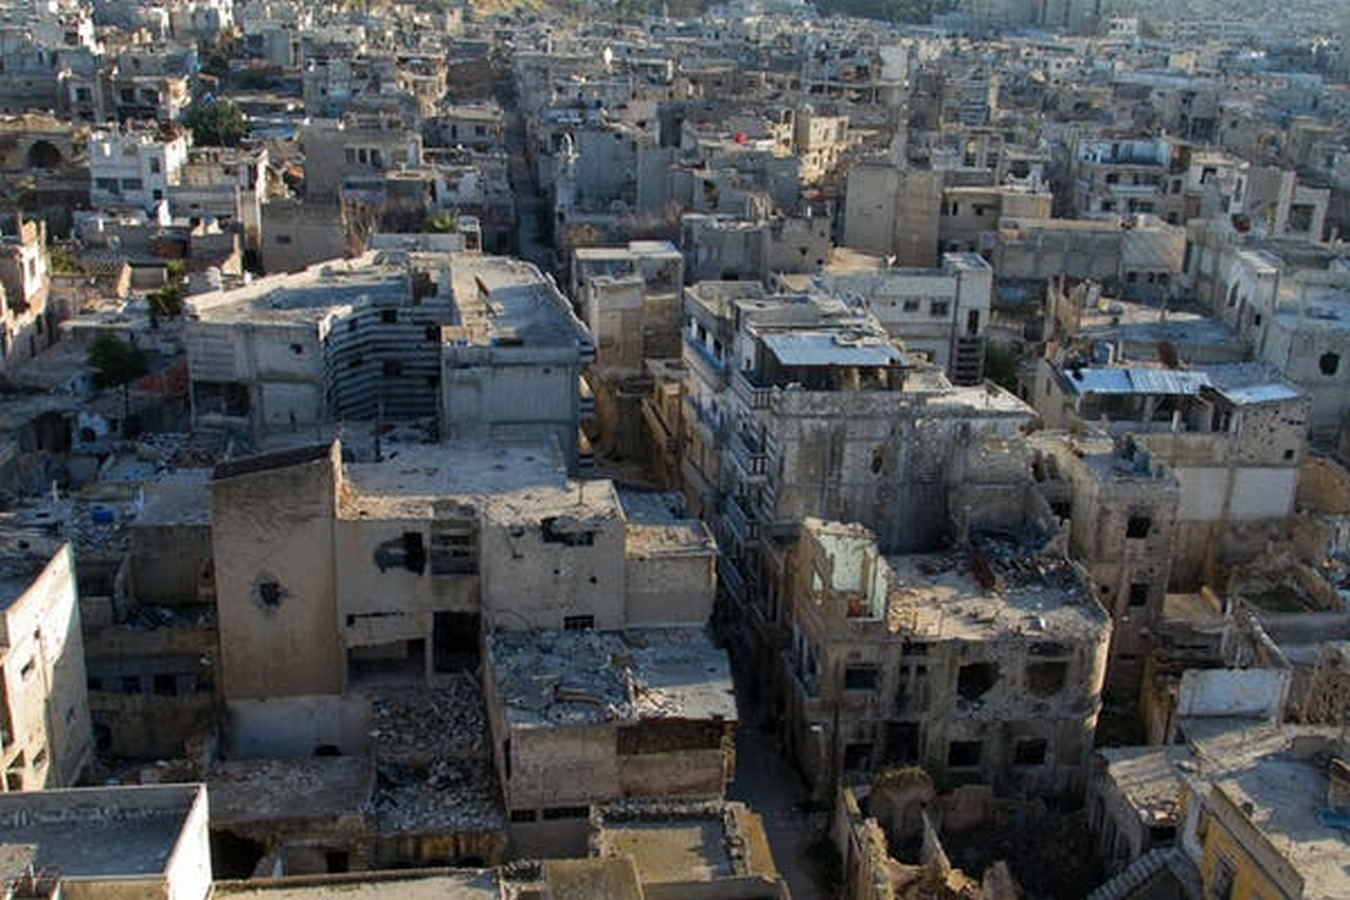 Lost In Time: Dead Cities, Syria - Sheet2